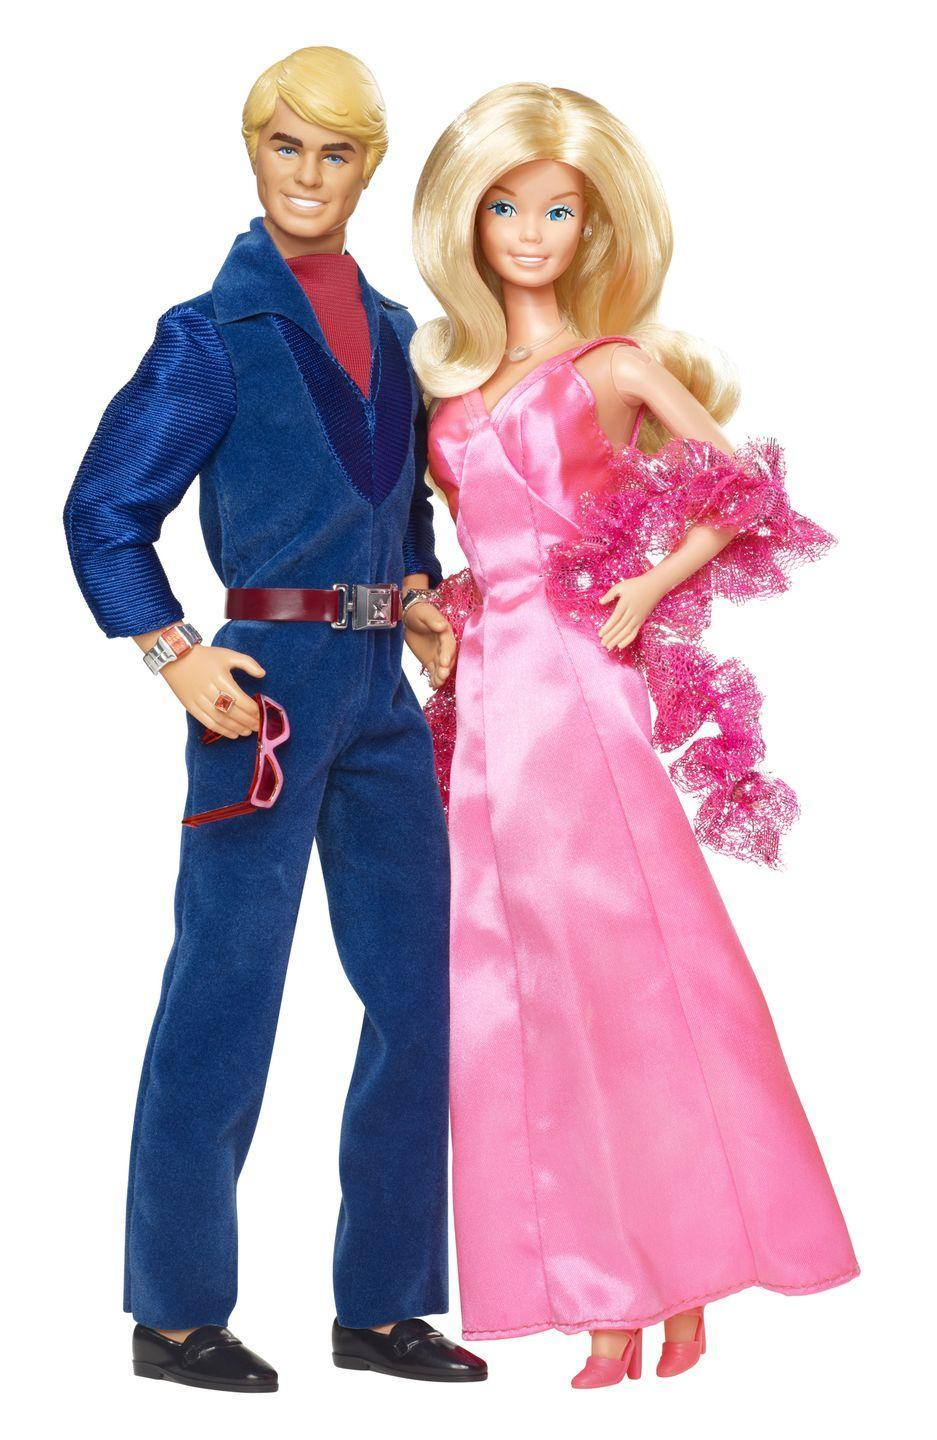 "<p>1977's Superstar Barbie gets a partner in 1978's velvet-and-satin clad Ken. </p><p><a href=""http://www.goodhousekeeping.com/home/a26666/70s-themed-throwback-home/"" rel=""nofollow noopener"" target=""_blank"" data-ylk=""slk:Tour a very '70s home »"" class=""link rapid-noclick-resp""><em>Tour a very '70s home »</em></a></p>"